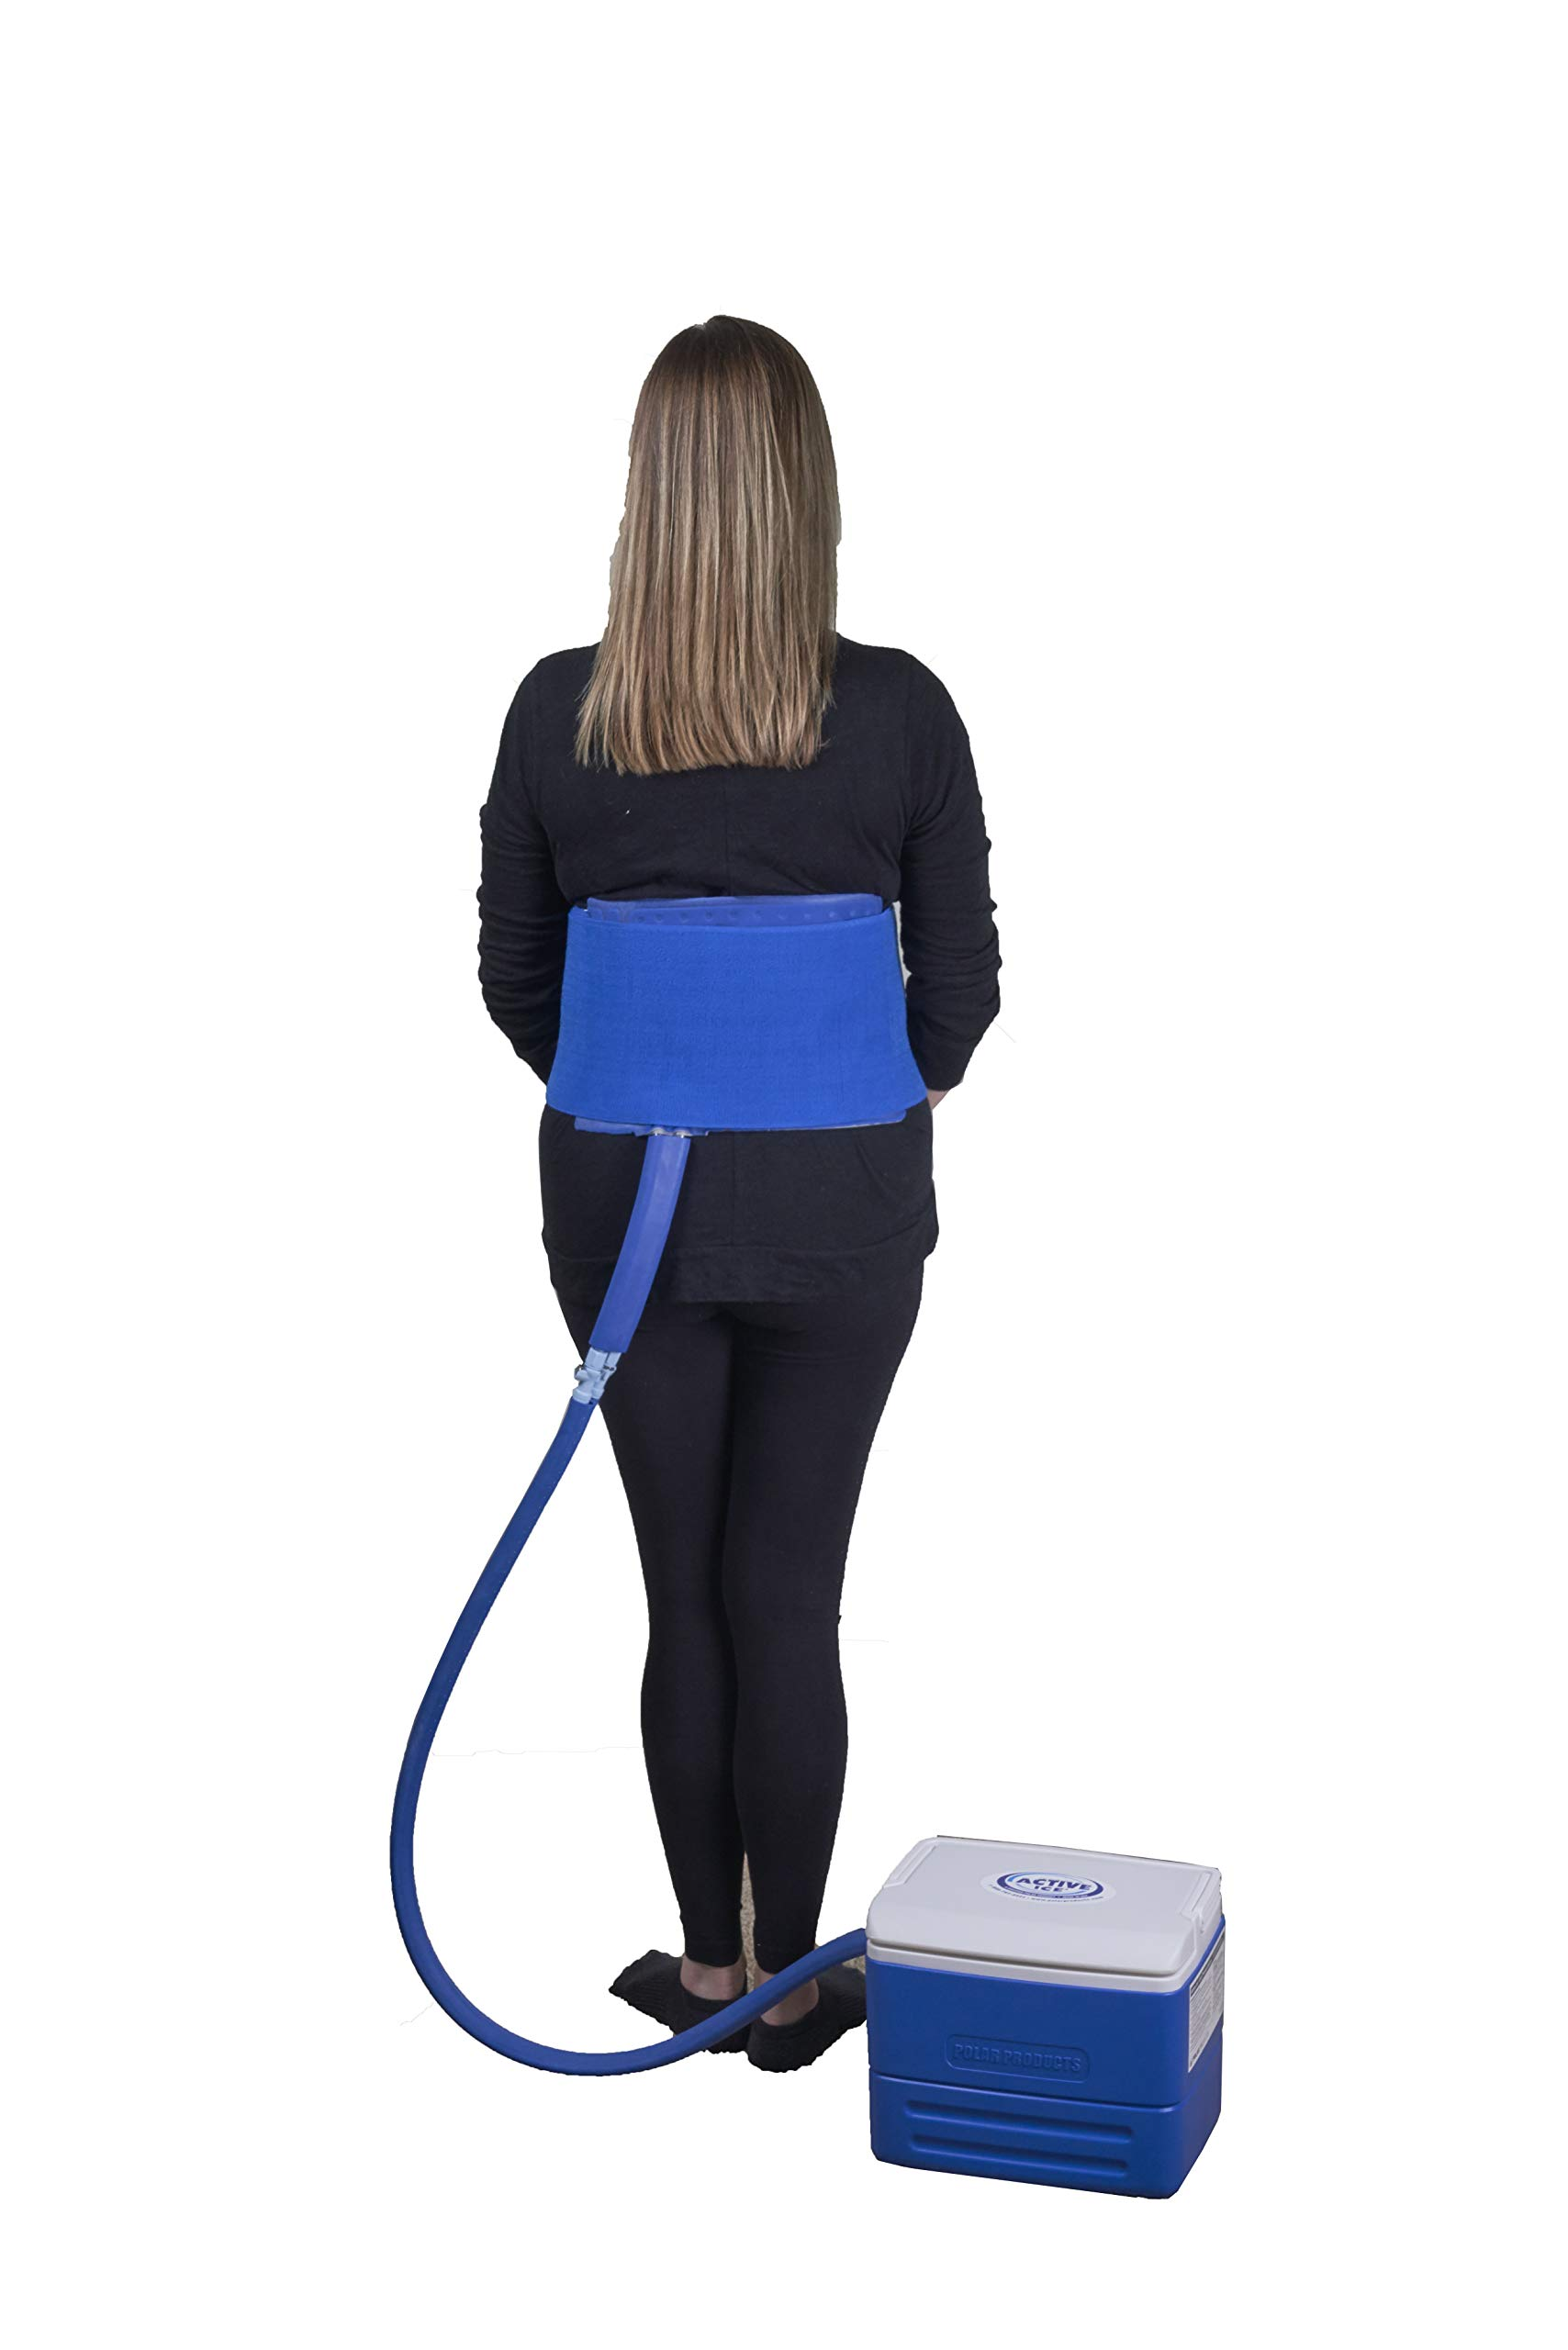 Active Ice® 3.0 Back & Hip Therapy System w/Digital Timer Includes Lumbar and Hip Bladder, 9 Quart Cooler by Polar Products Inc.